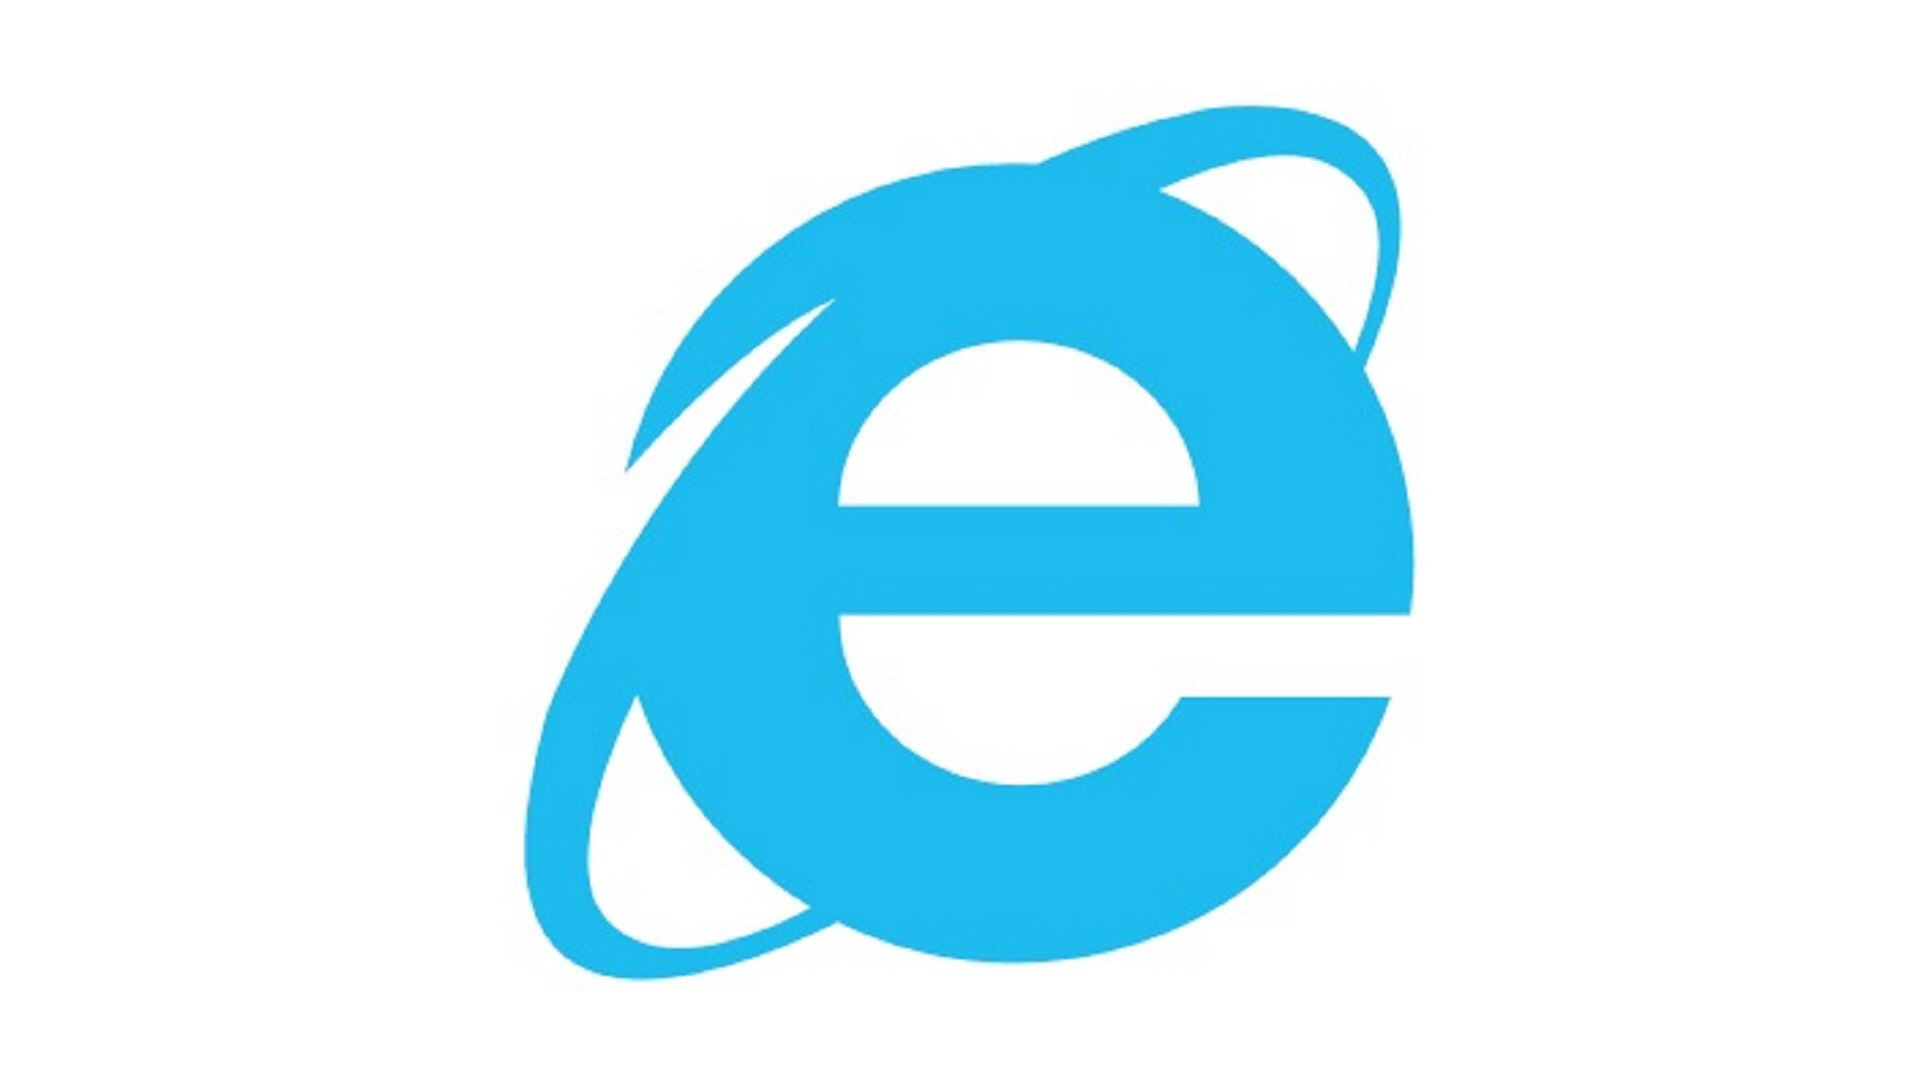 Microsoft to Drop Old Internet Explorer Support: What to Do